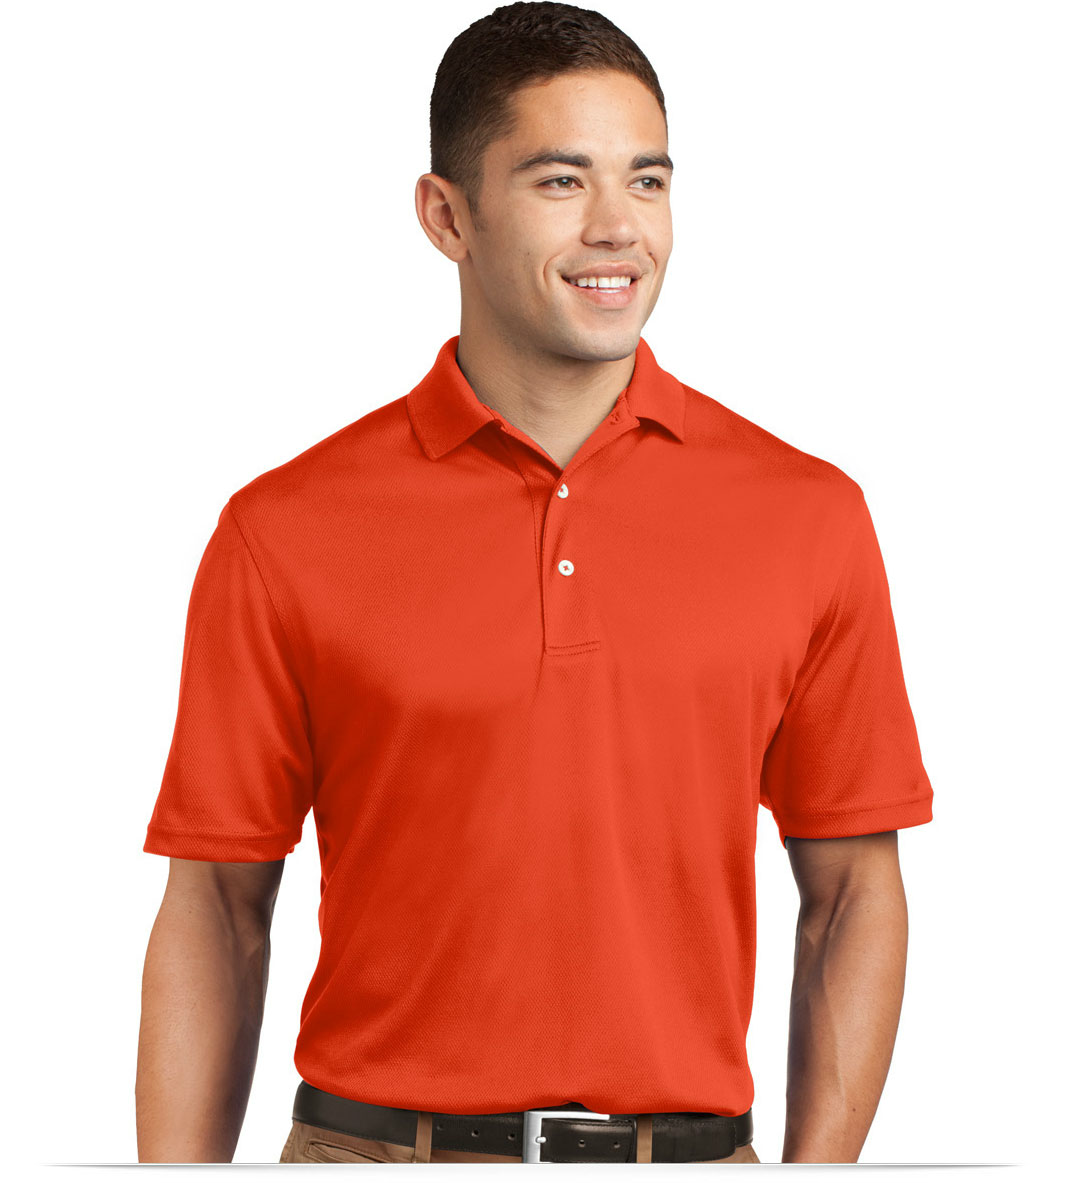 Design Embroidered Dri Mesh Polo Shirt Online At Allstar Logo